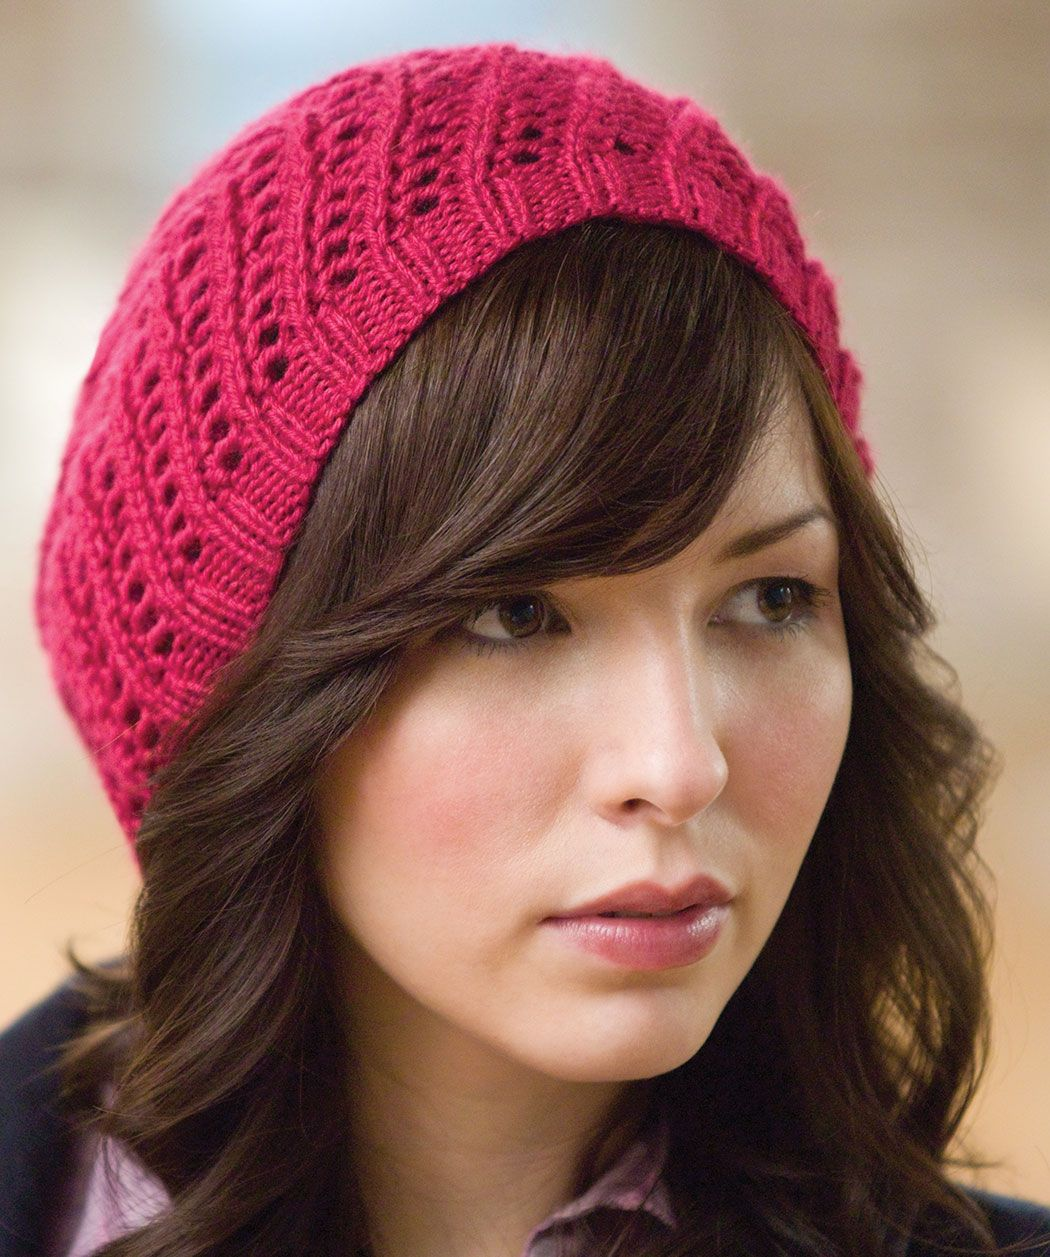 All Day Beret - this is a knitting pattern and I love the look of it ...